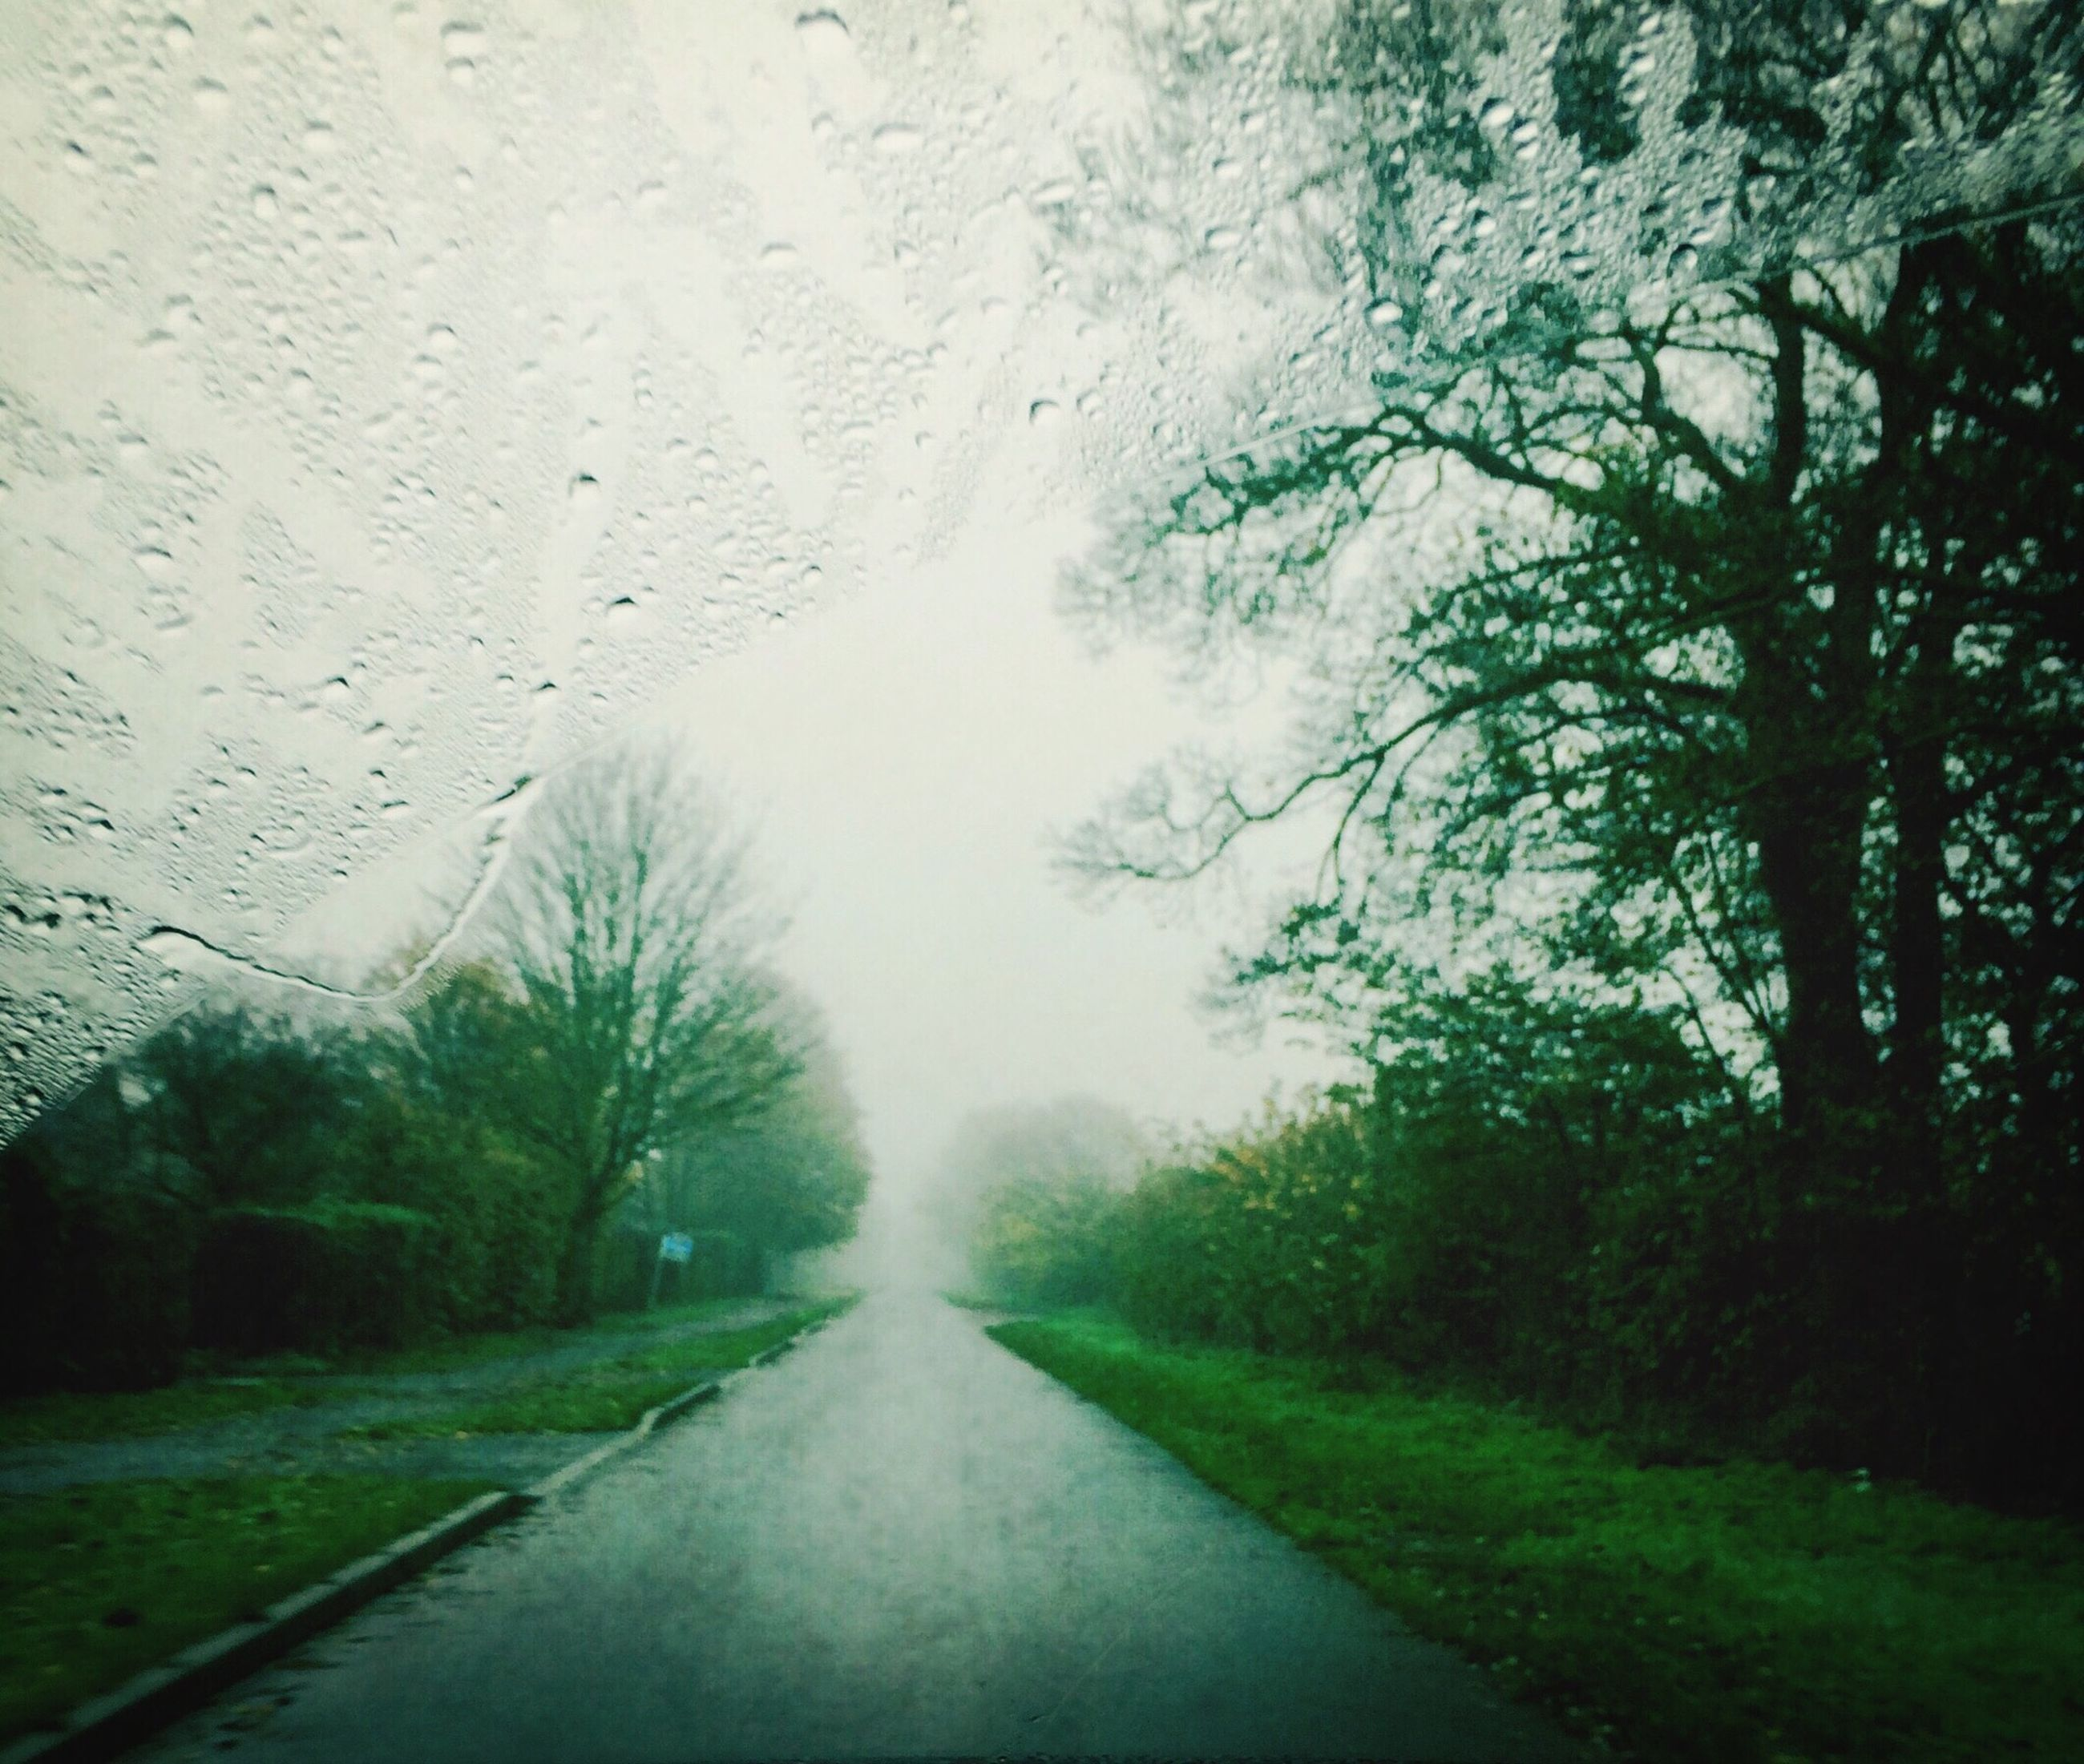 the way forward, diminishing perspective, road, tree, transportation, vanishing point, wet, weather, sky, rain, transparent, nature, country road, grass, empty road, growth, day, drop, glass - material, tranquility